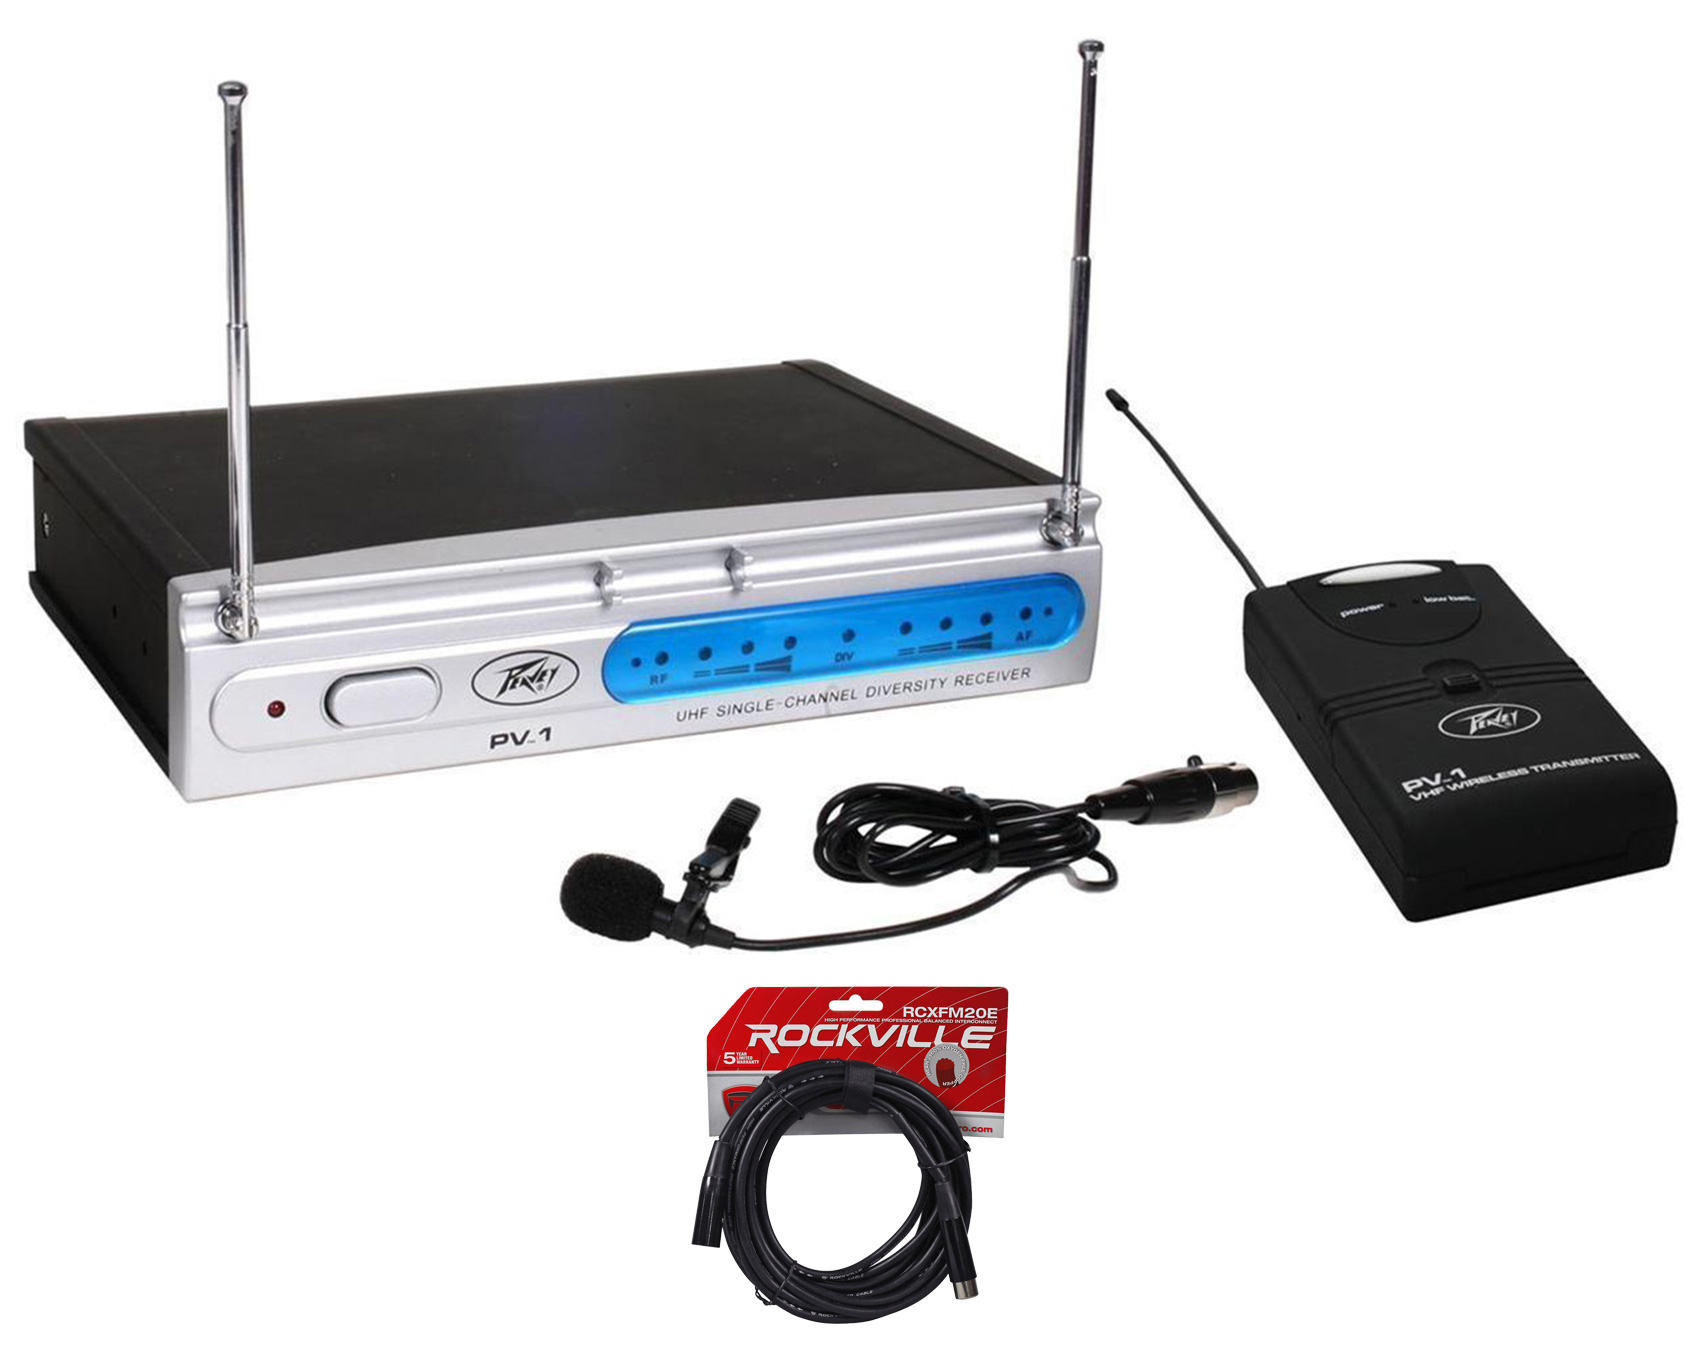 Peavey PV-1 U1 BL 923.70 Mhz UHF Wireless Lavalier Microphone System+XLR Cable by Peavey